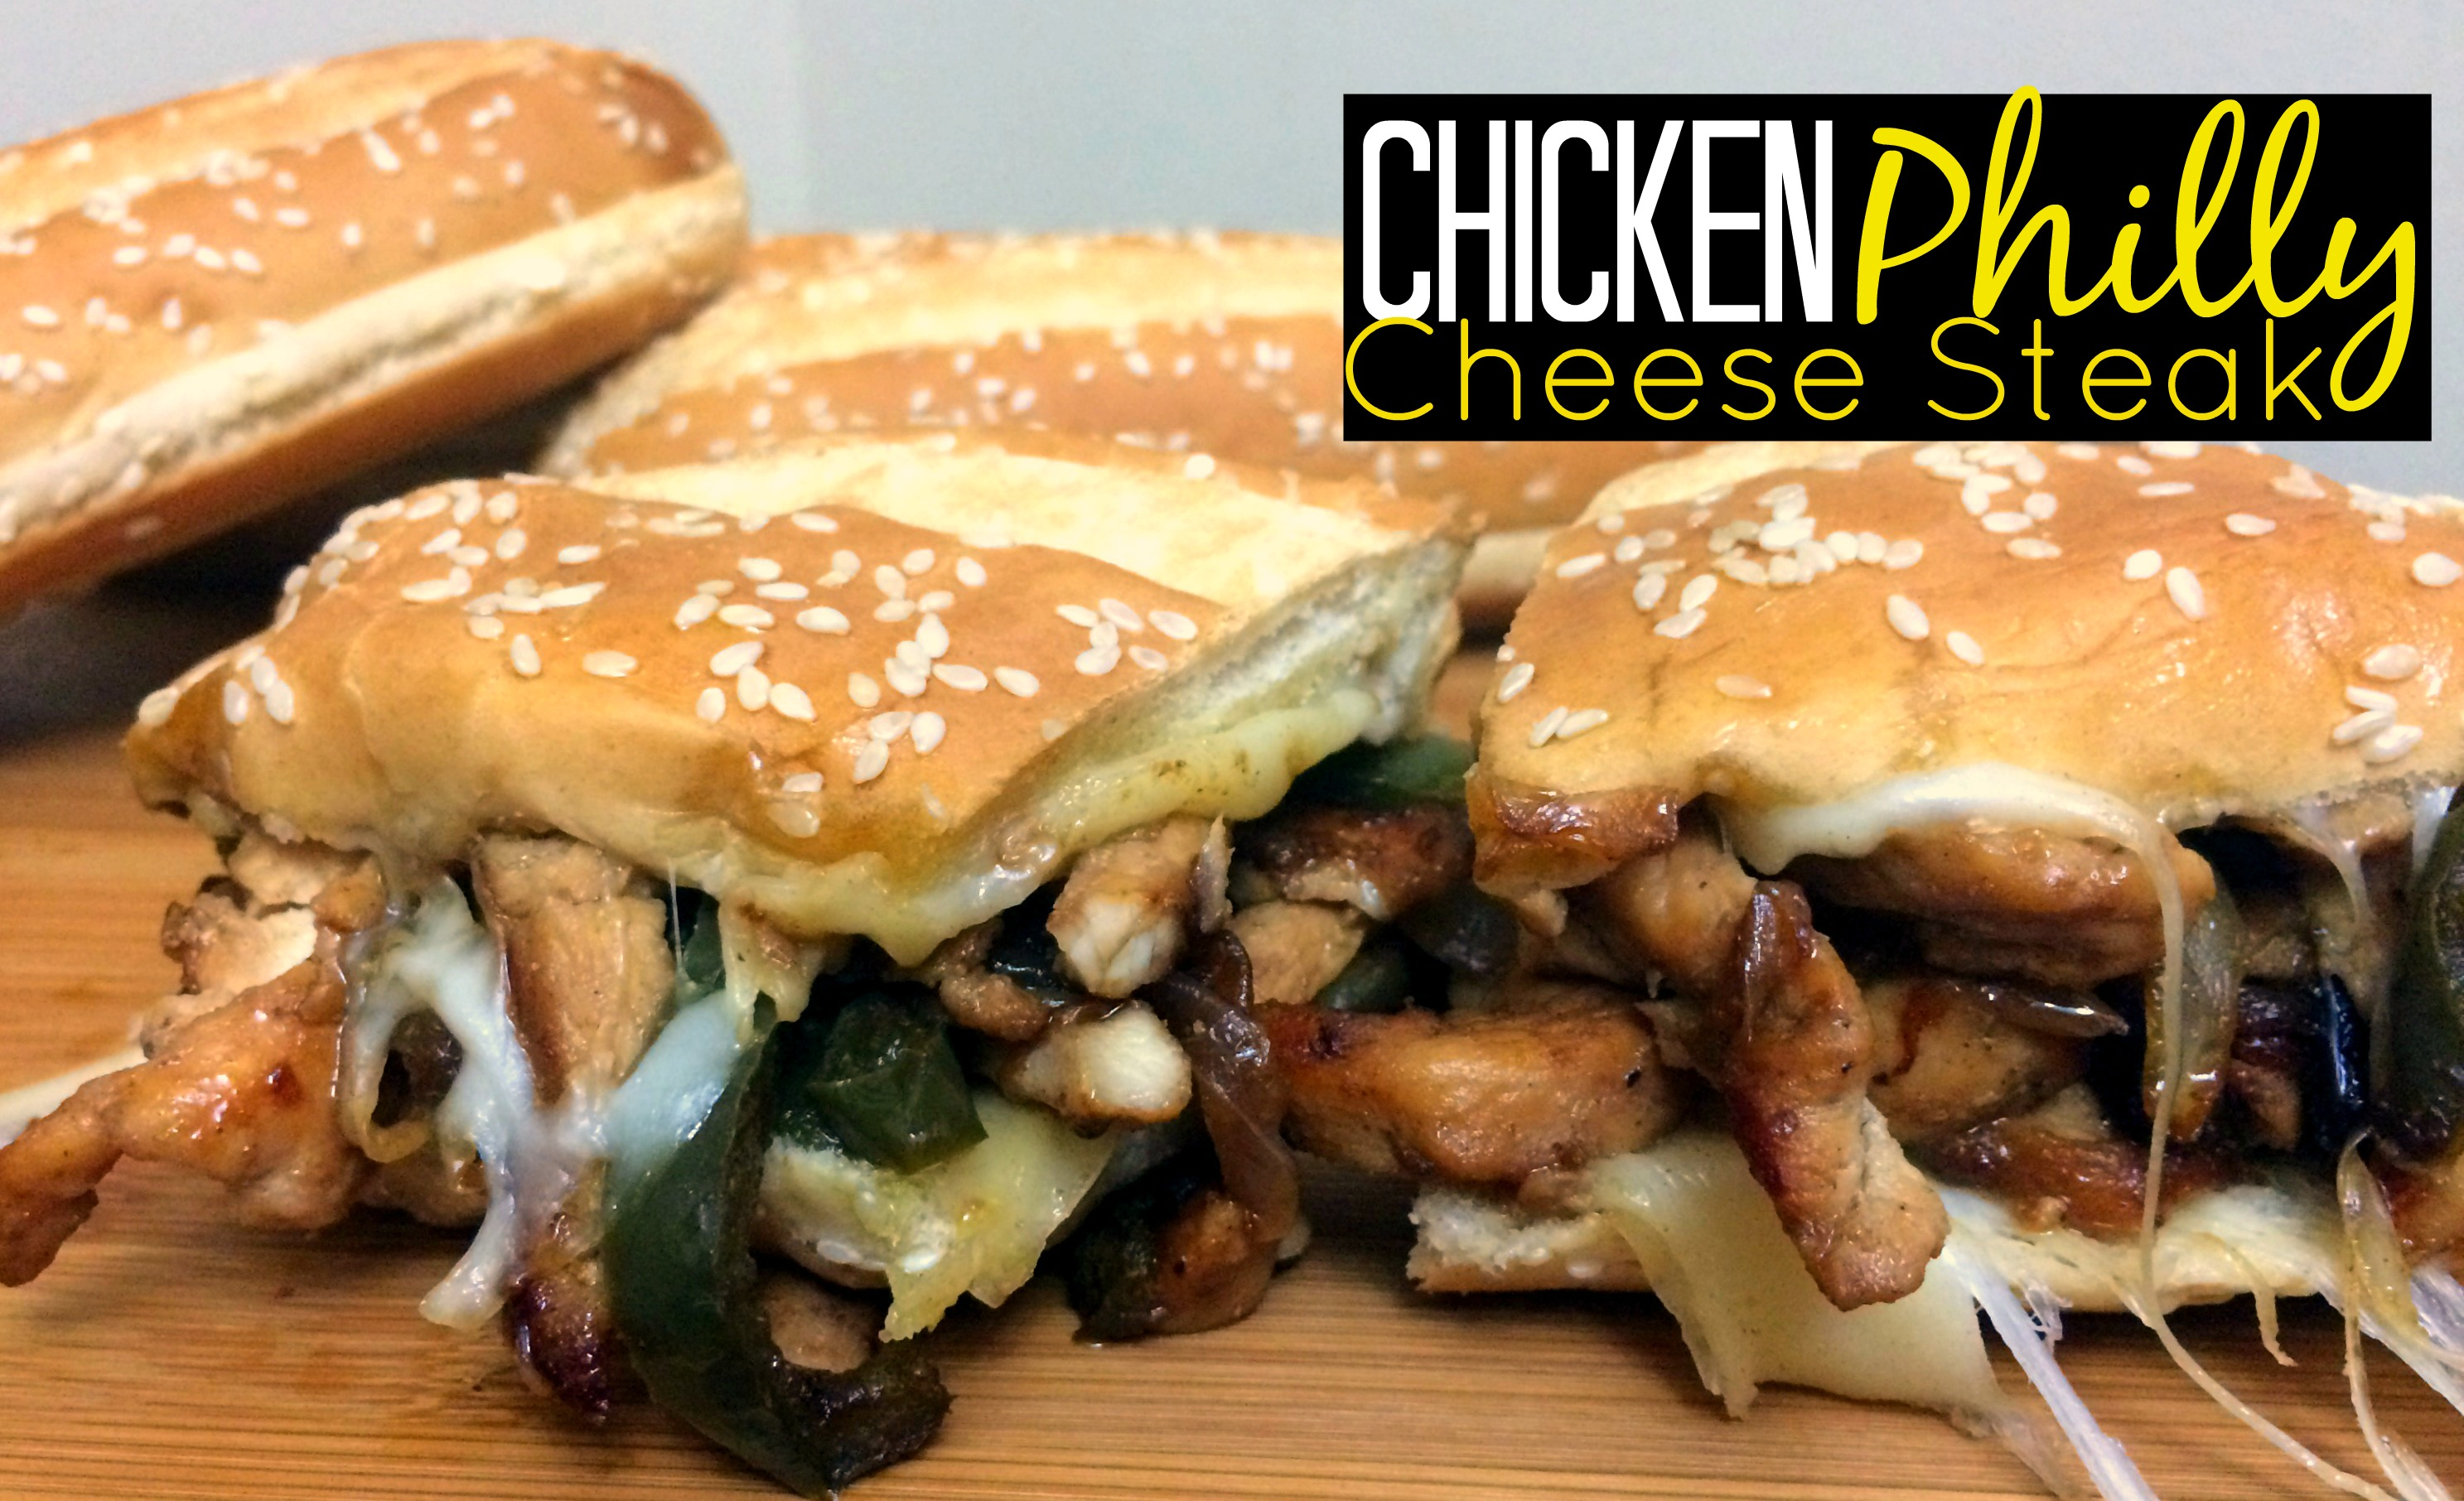 Chicken Philly Cheese Steak - Aunt Bee's Recipes